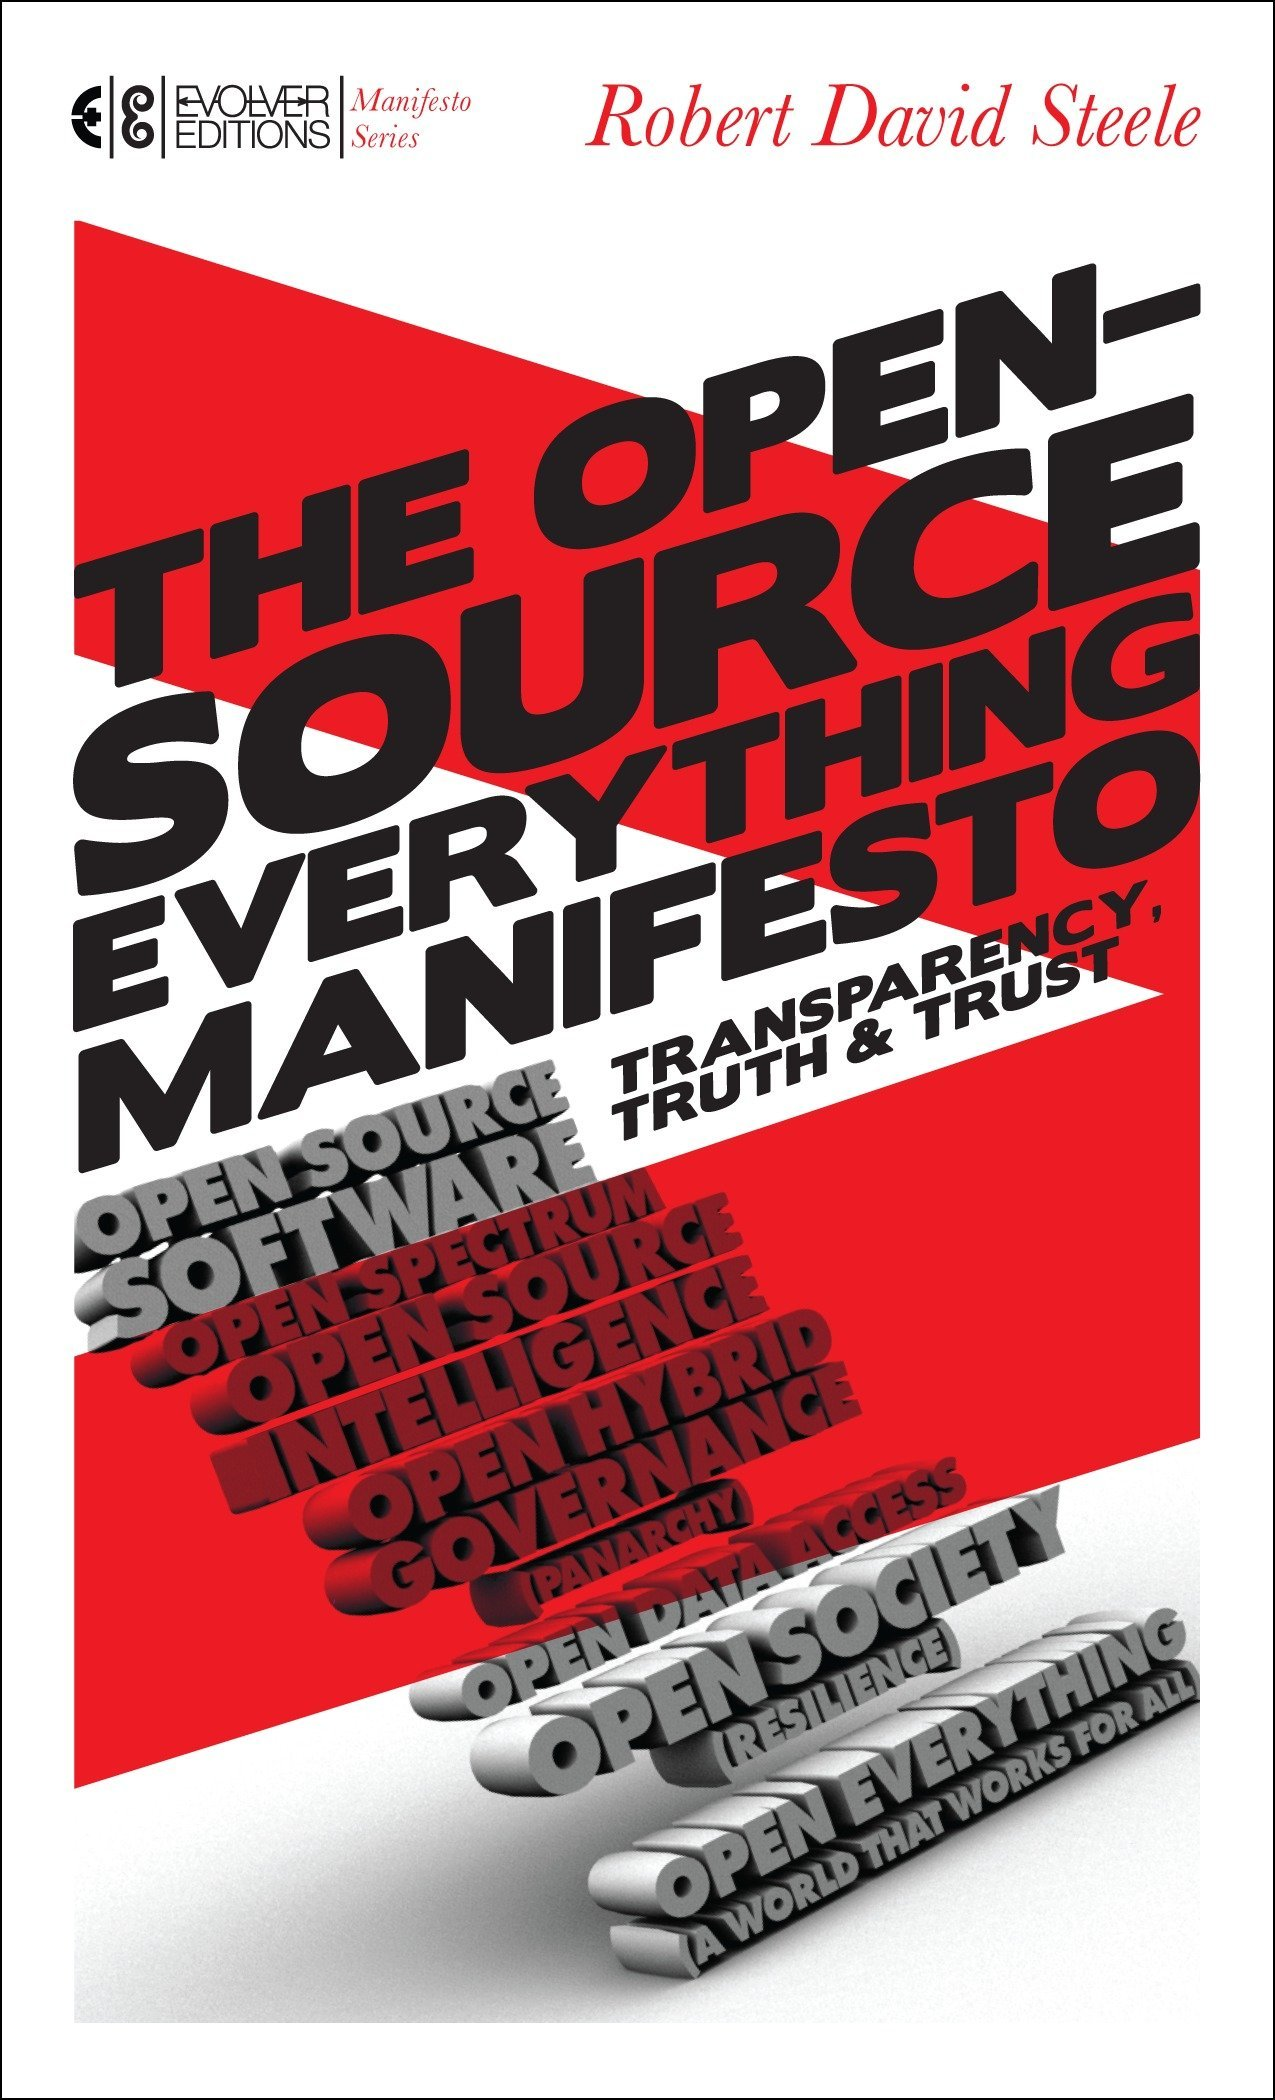 Transparency Truth The Open-Source Everything Manifesto and Trust